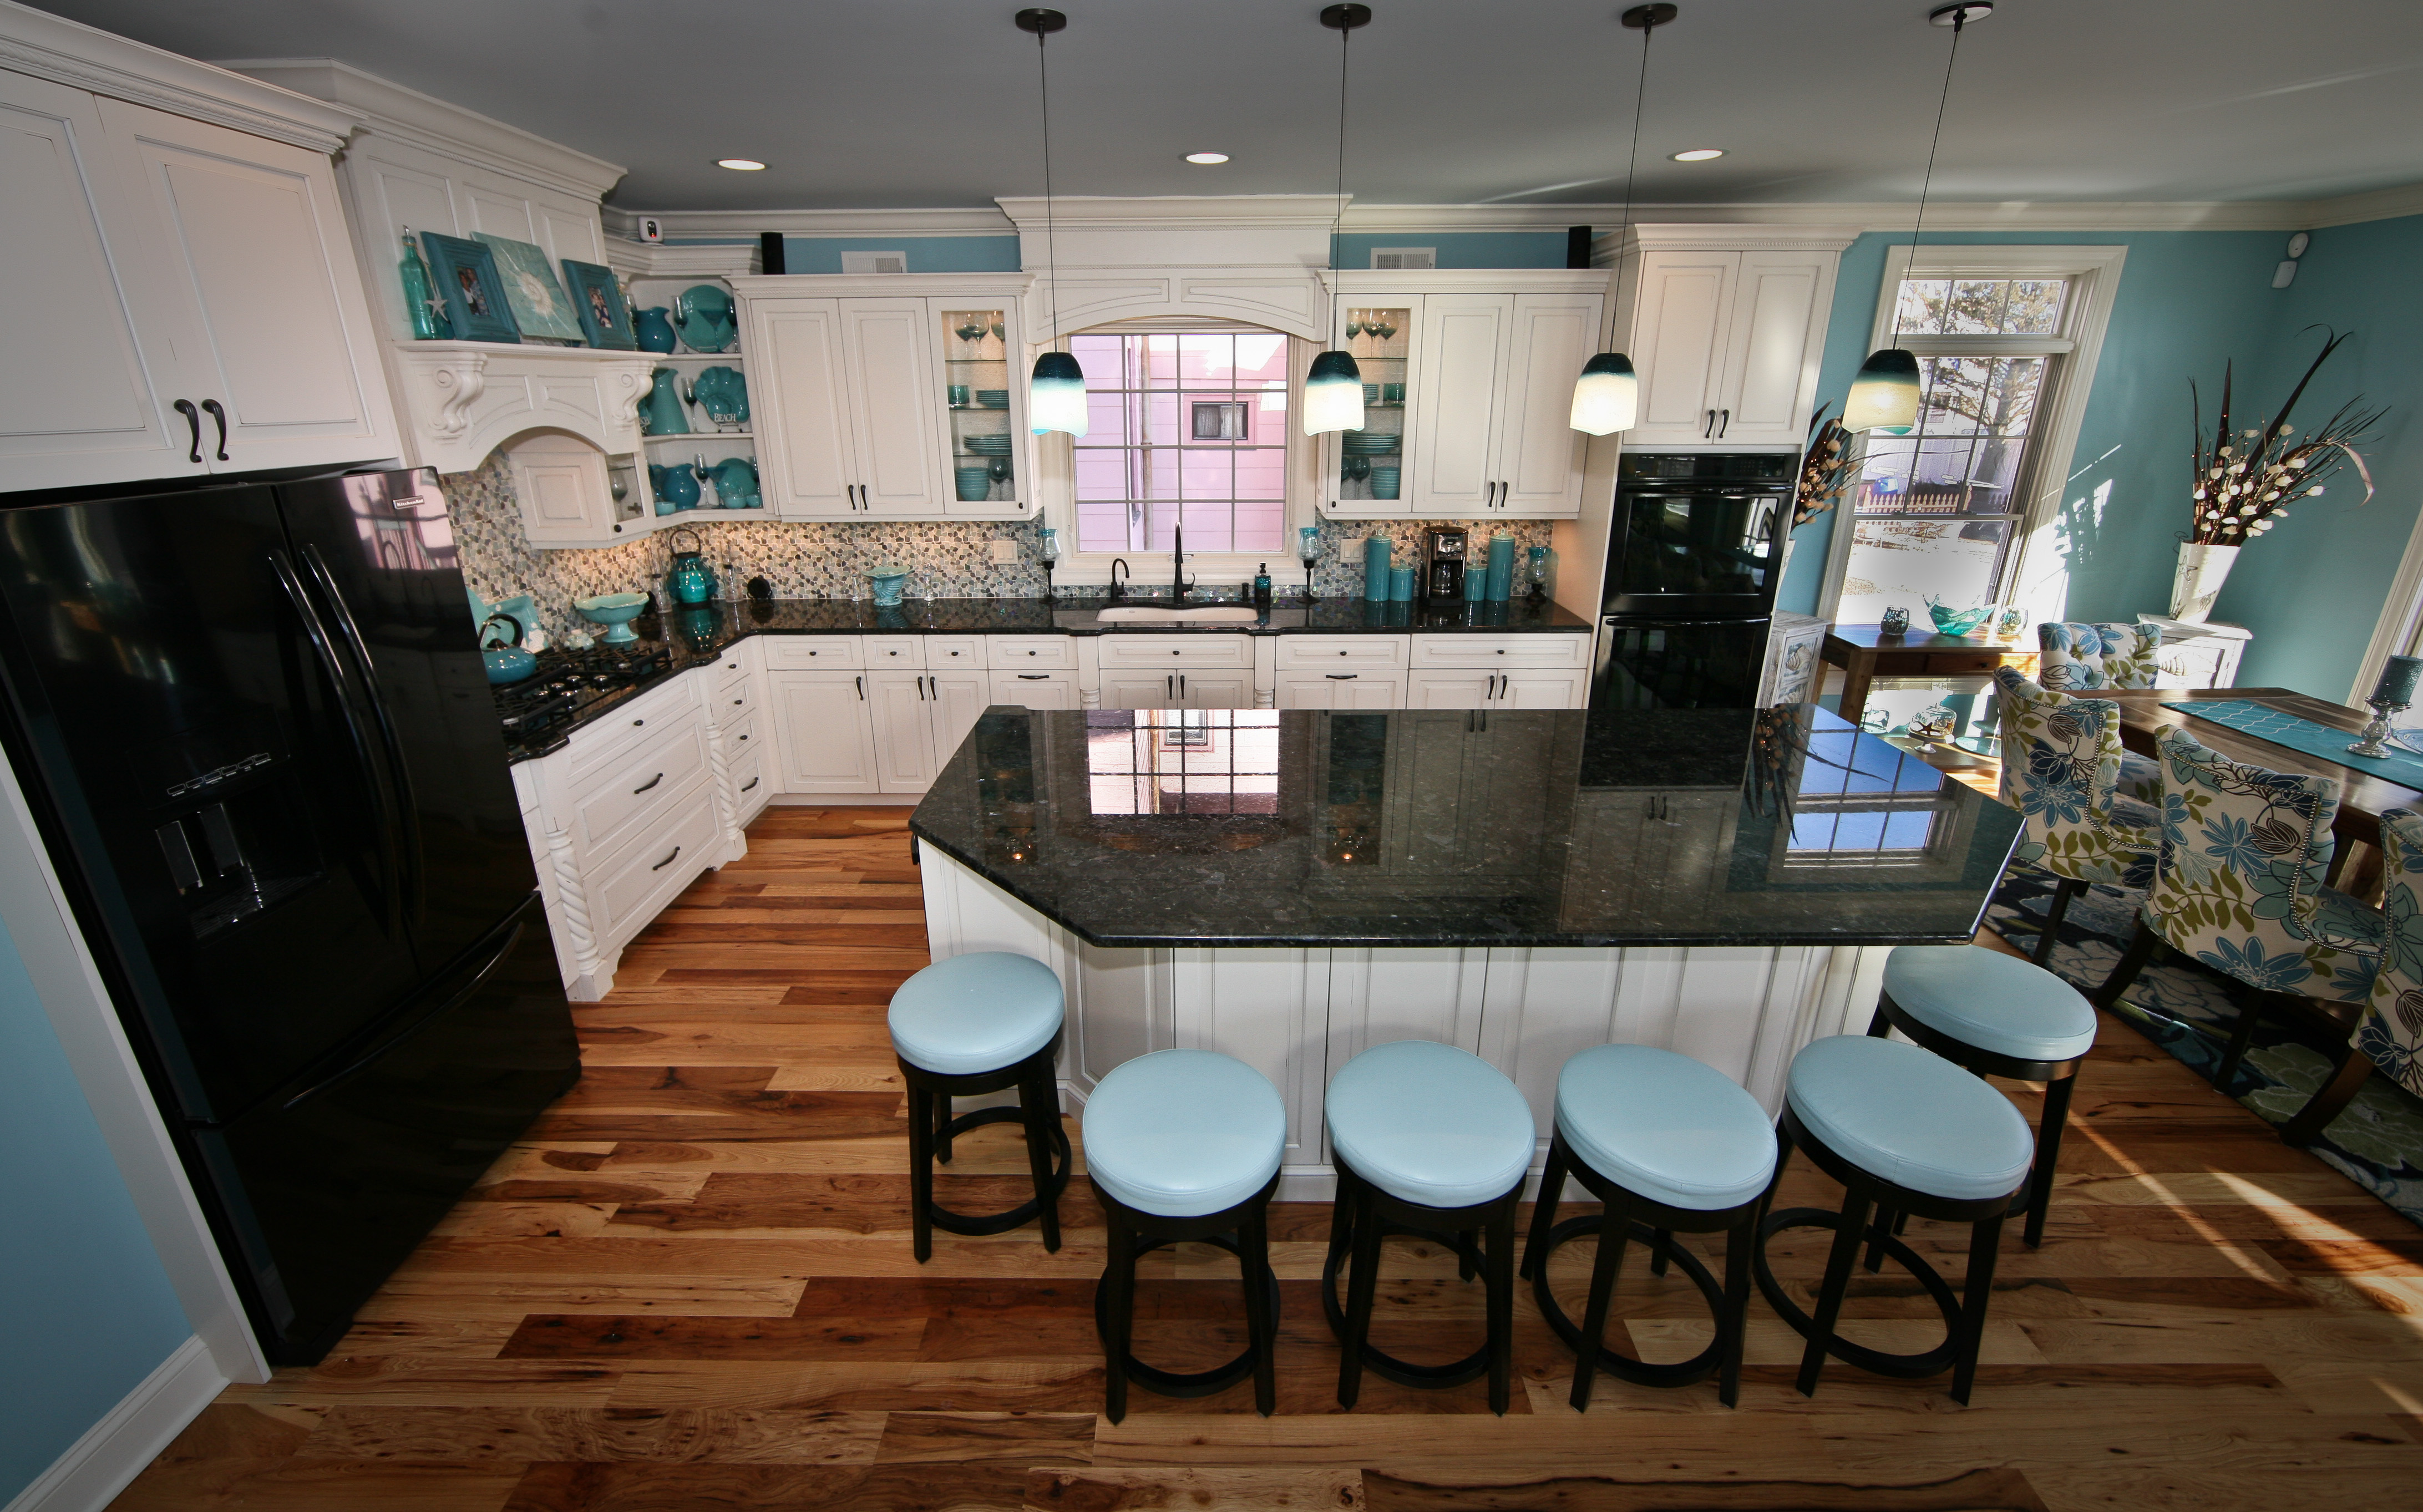 kitchens decor carts and done pin kitchen teal cart island